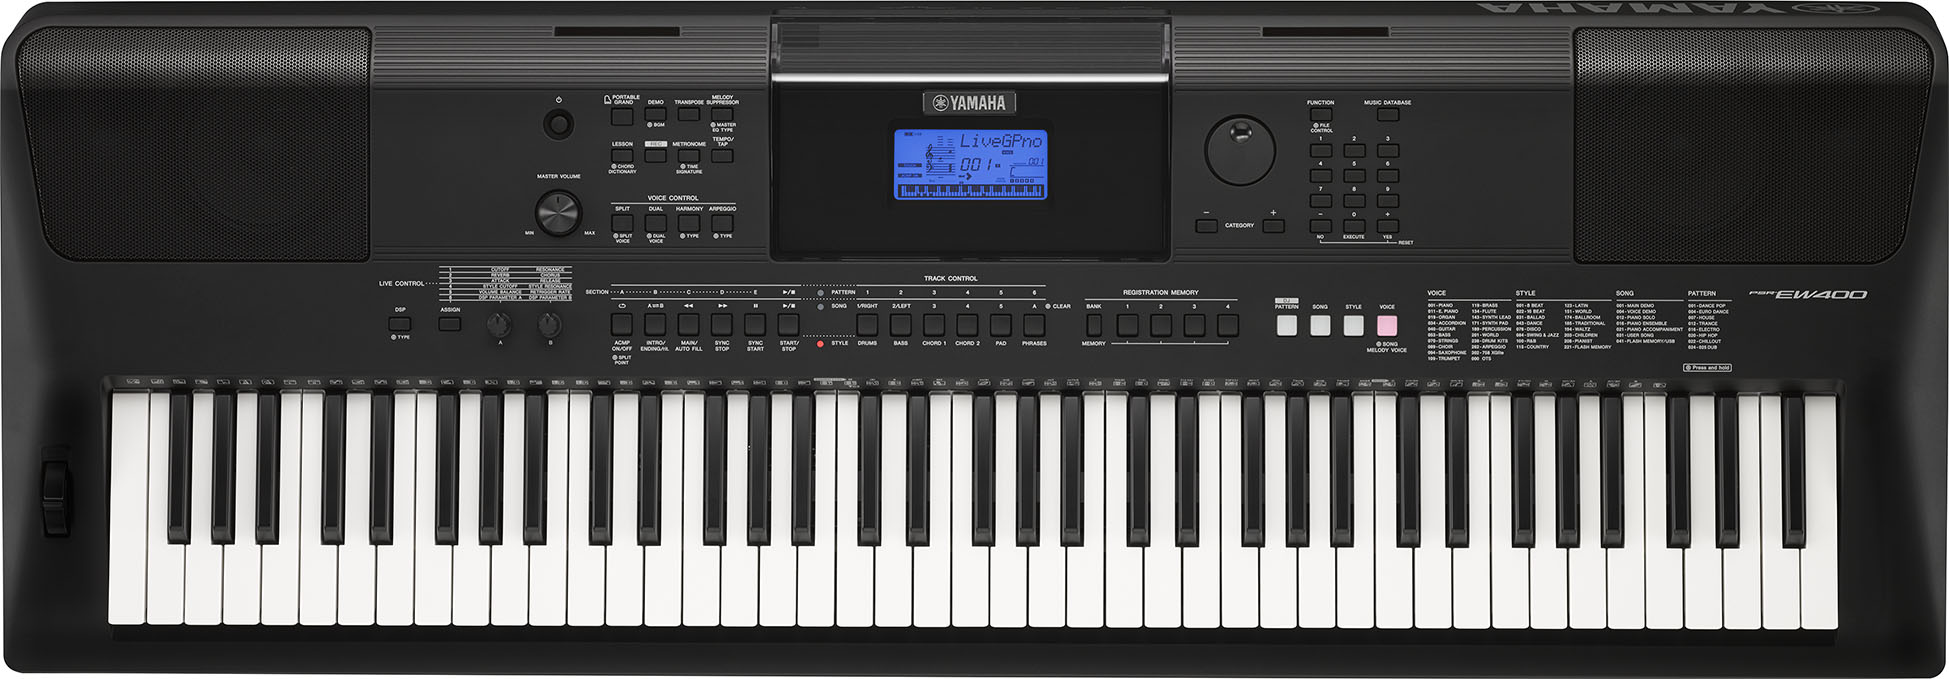 musikmesse 2016 yamaha psr ew400 sweetwater. Black Bedroom Furniture Sets. Home Design Ideas